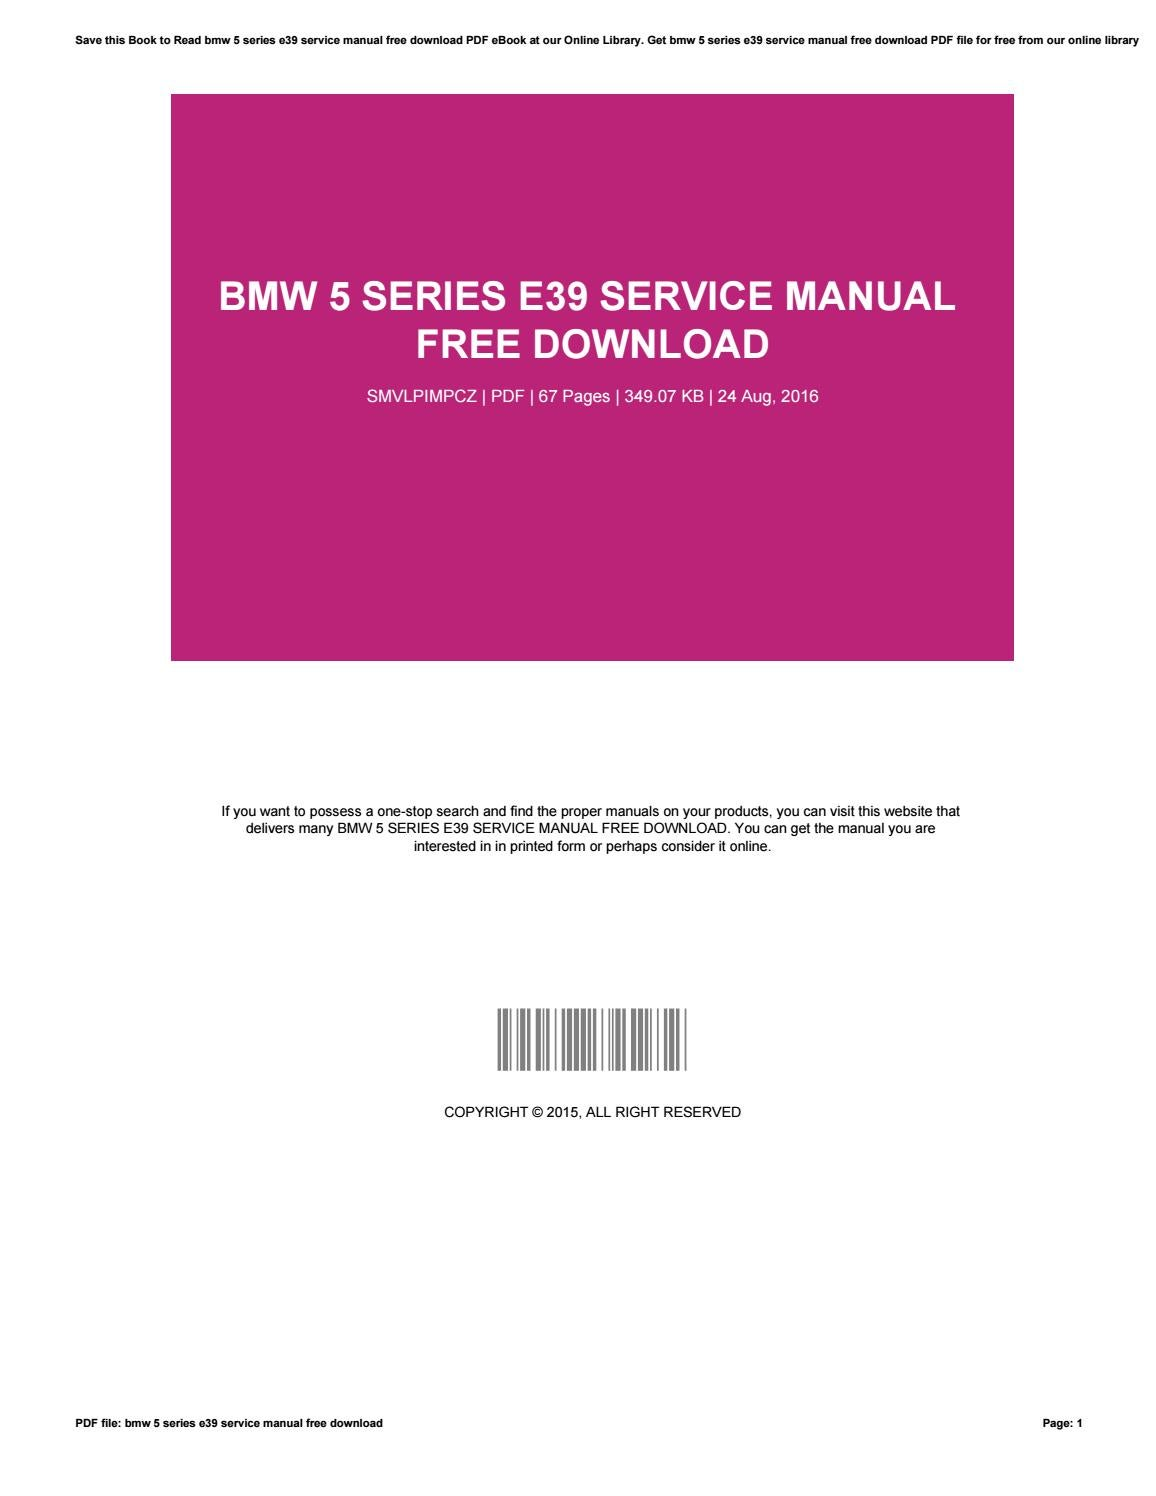 Bmw 5 Series E39 Service Manual Free Download By Janegreen4660 Issuu